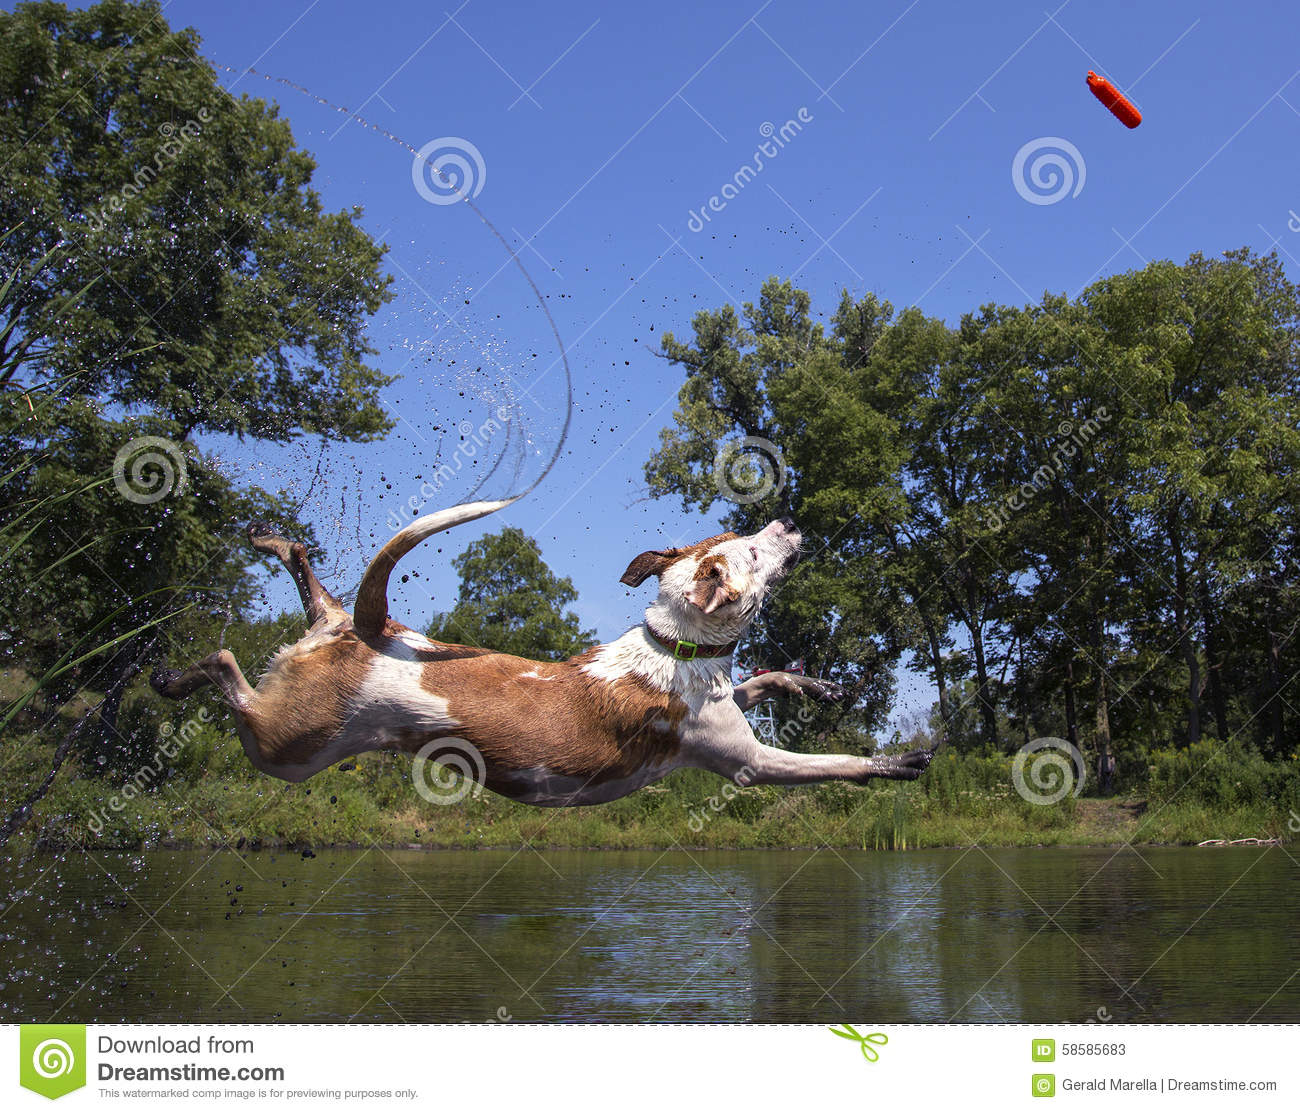 Mixed breed dog diving into a pond